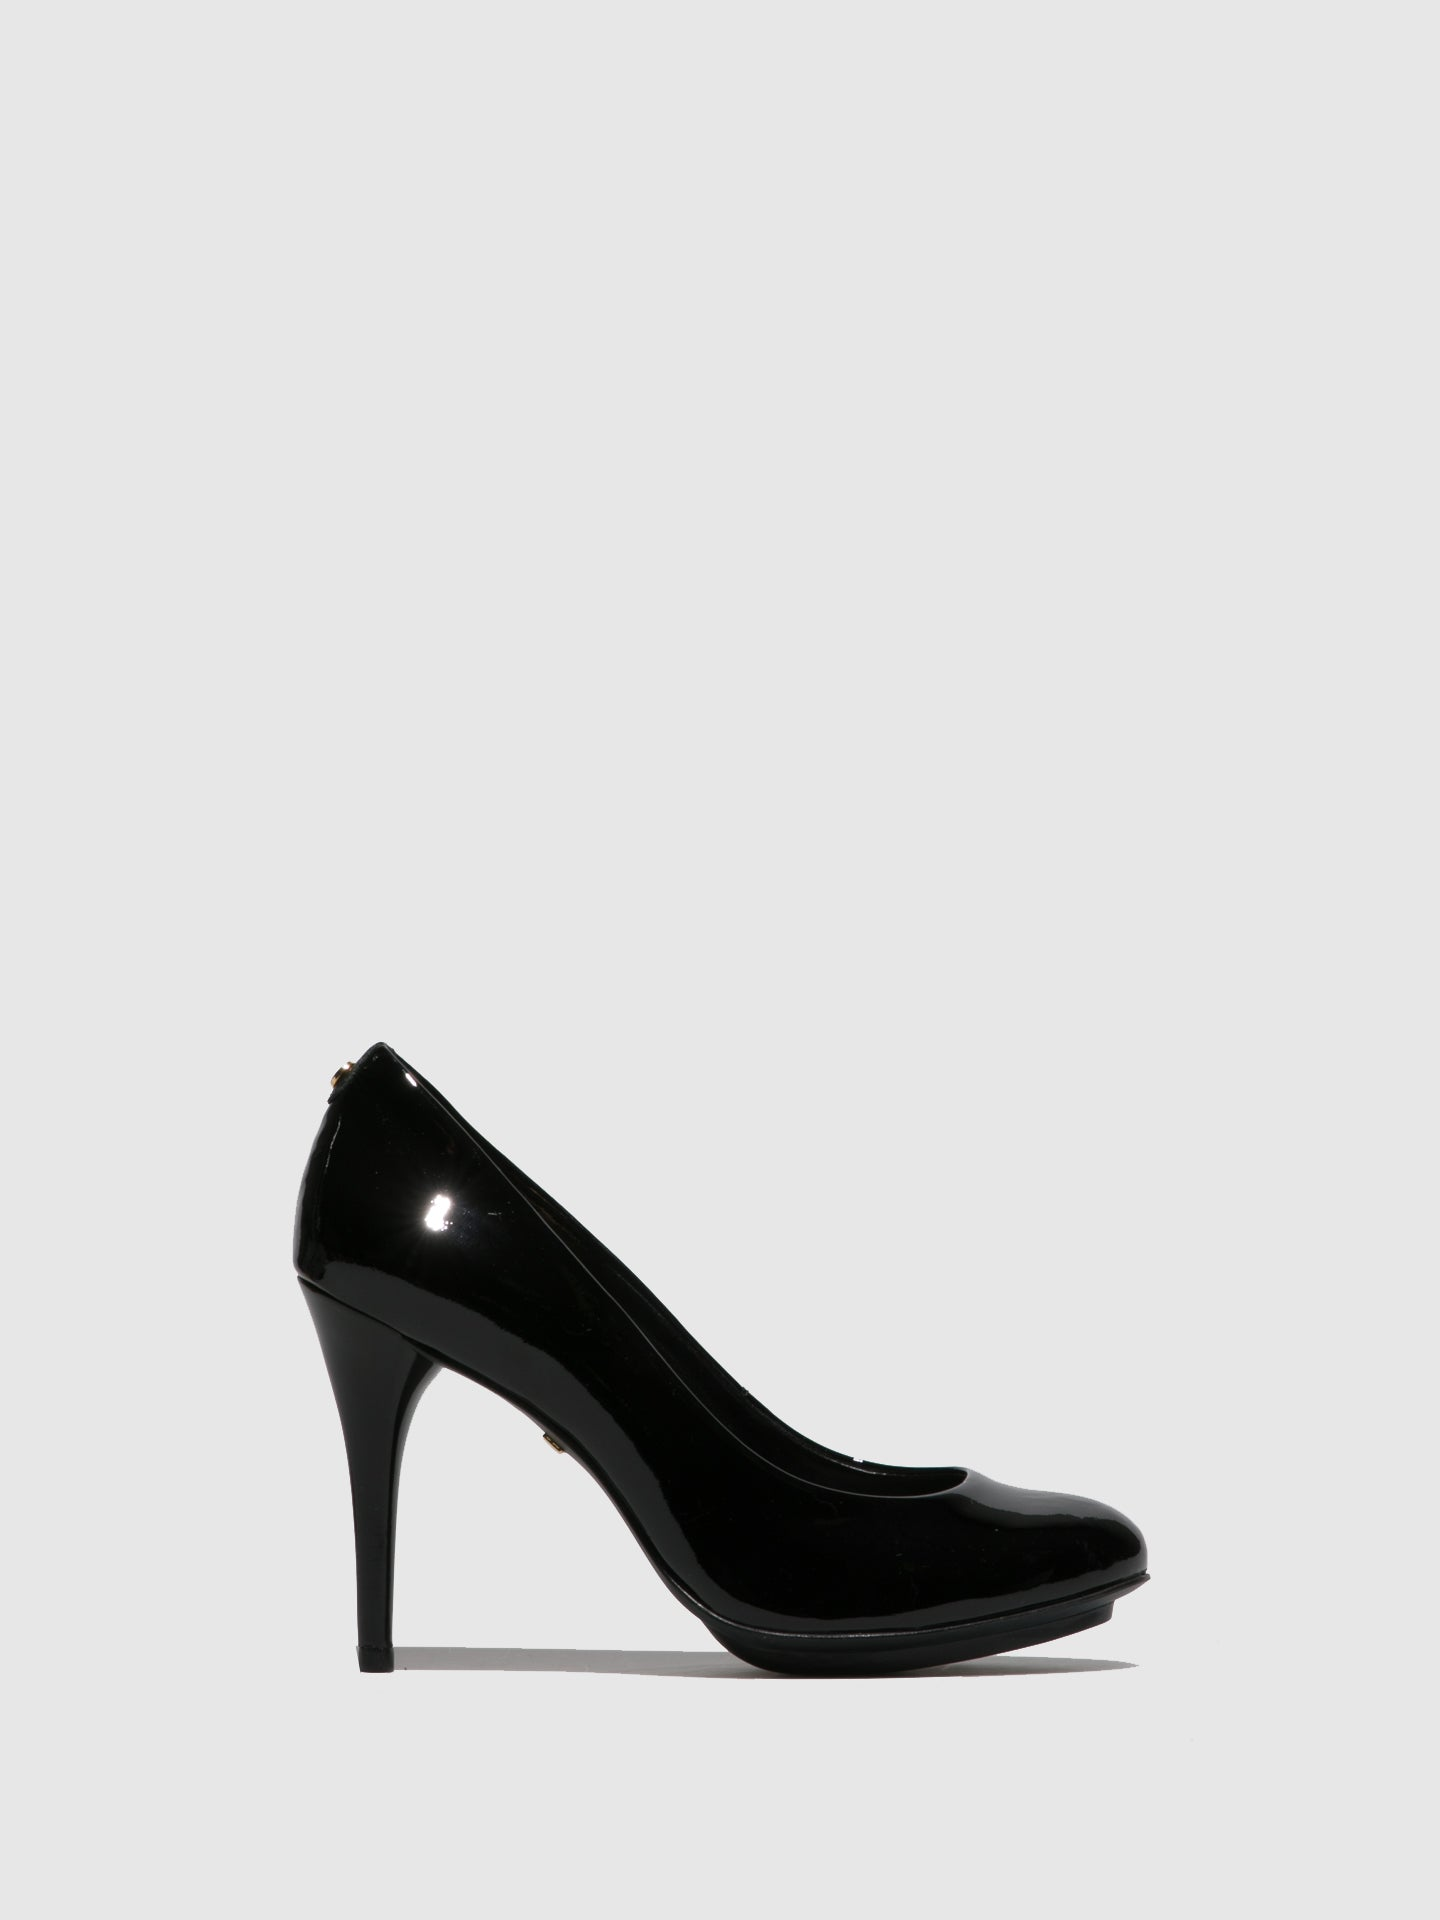 Parodi Passion Black Round Toe Shoes